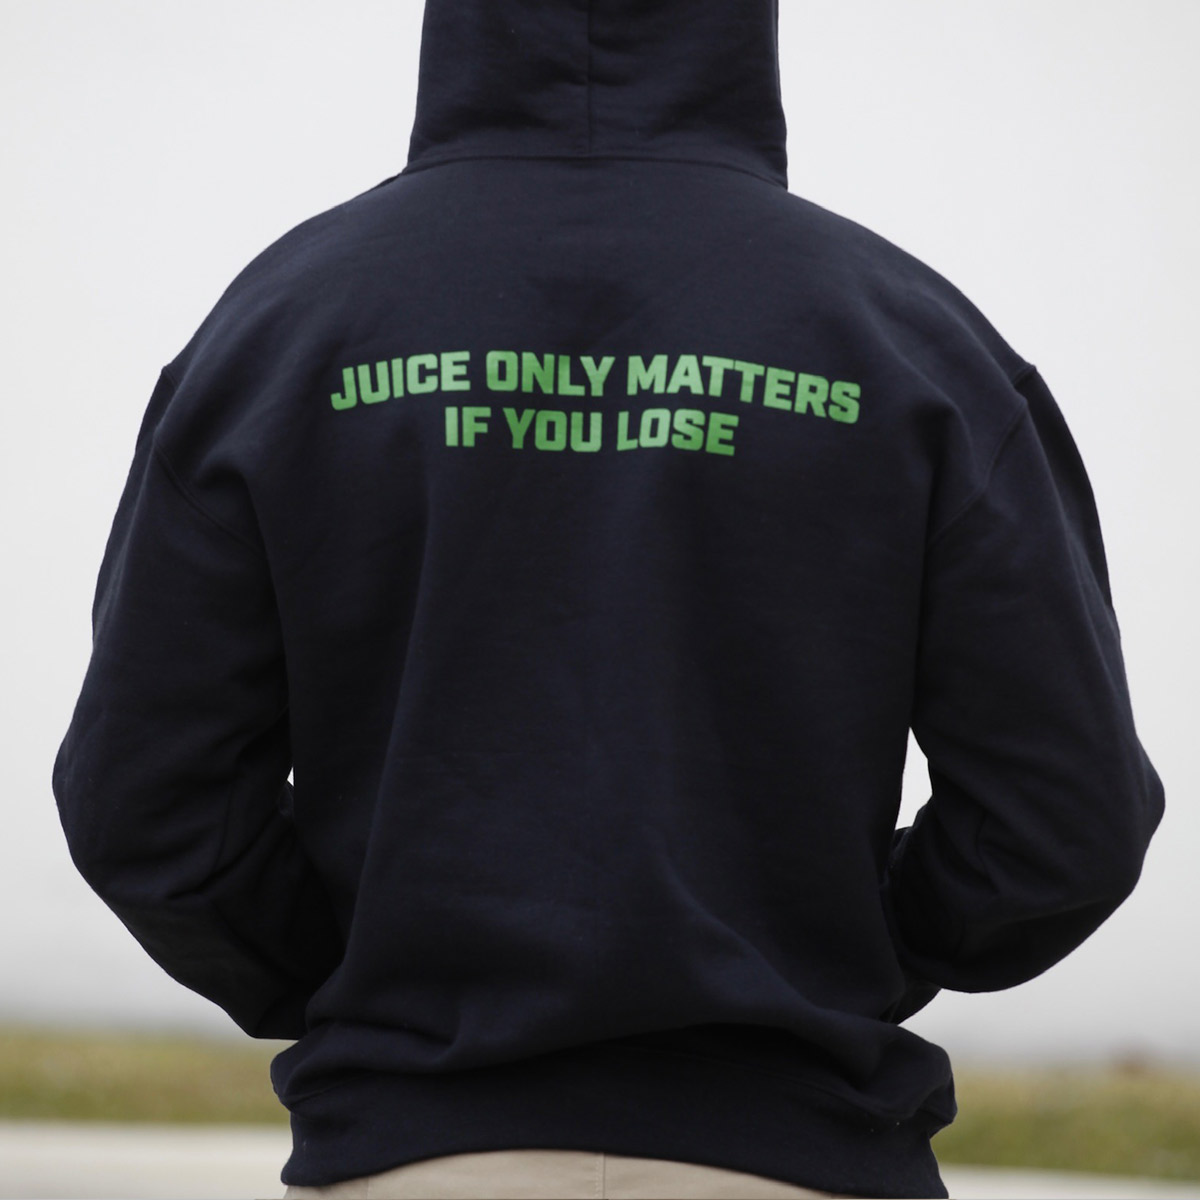 Juice only matters if you lose - black hooded sweatshirt - back